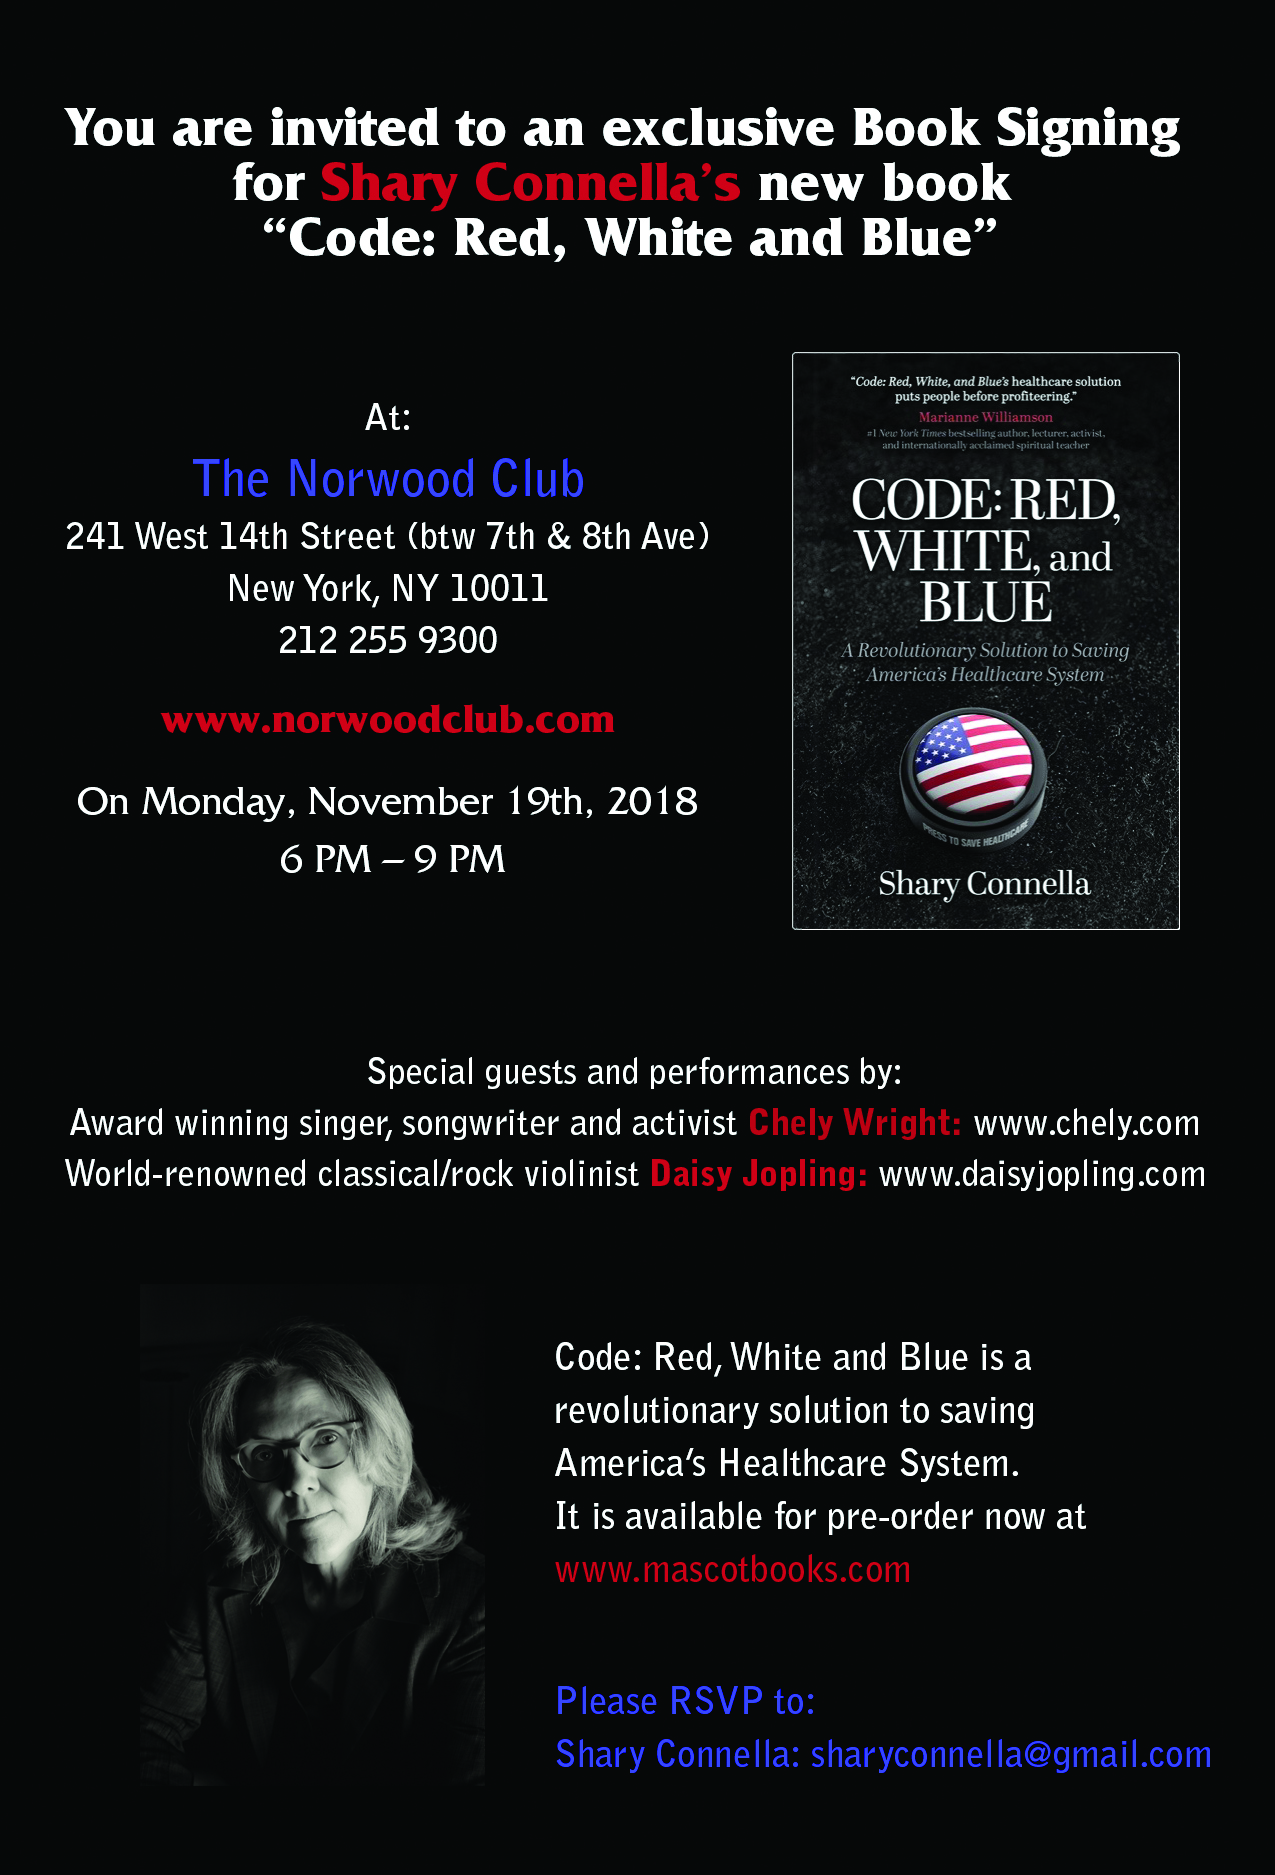 Norwood Club code red white blue nov 19.jpg